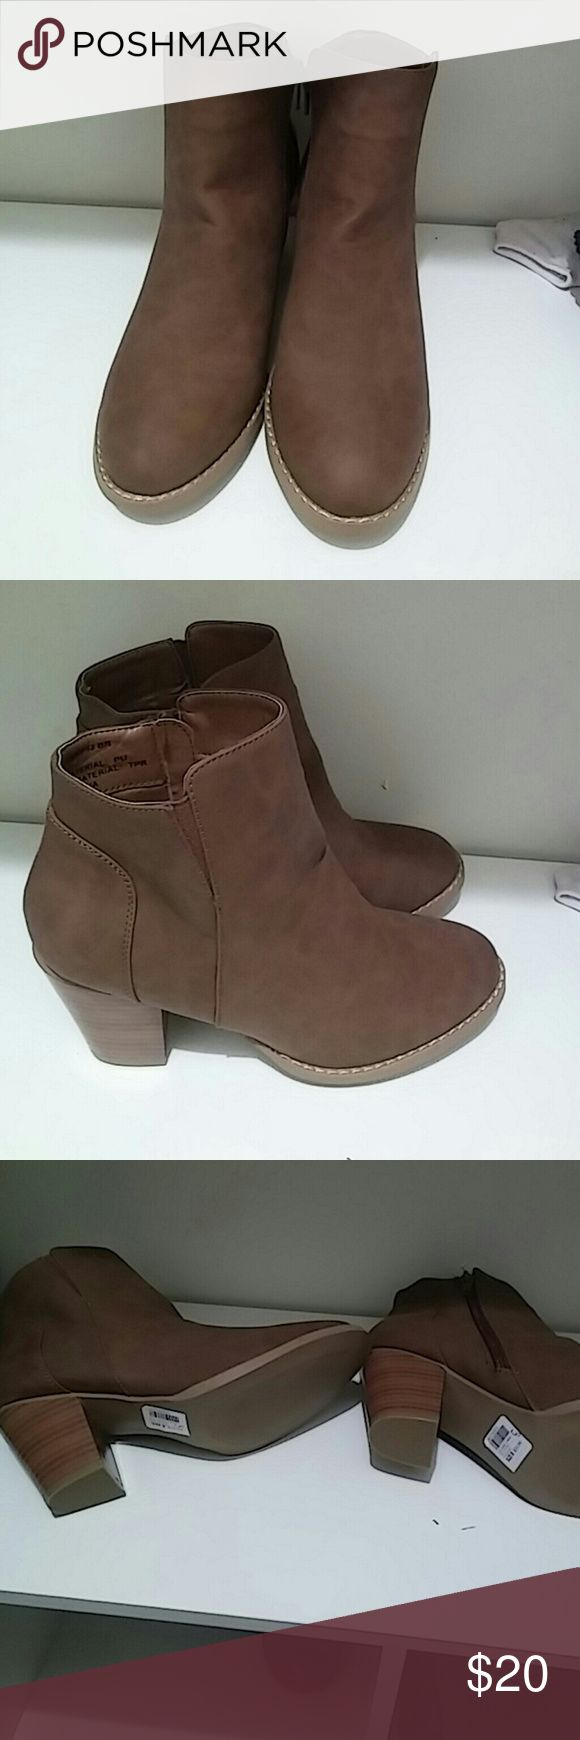 Women shoes Fall ankle boots Charming Charlies Shoes Ankle Boots & Booties